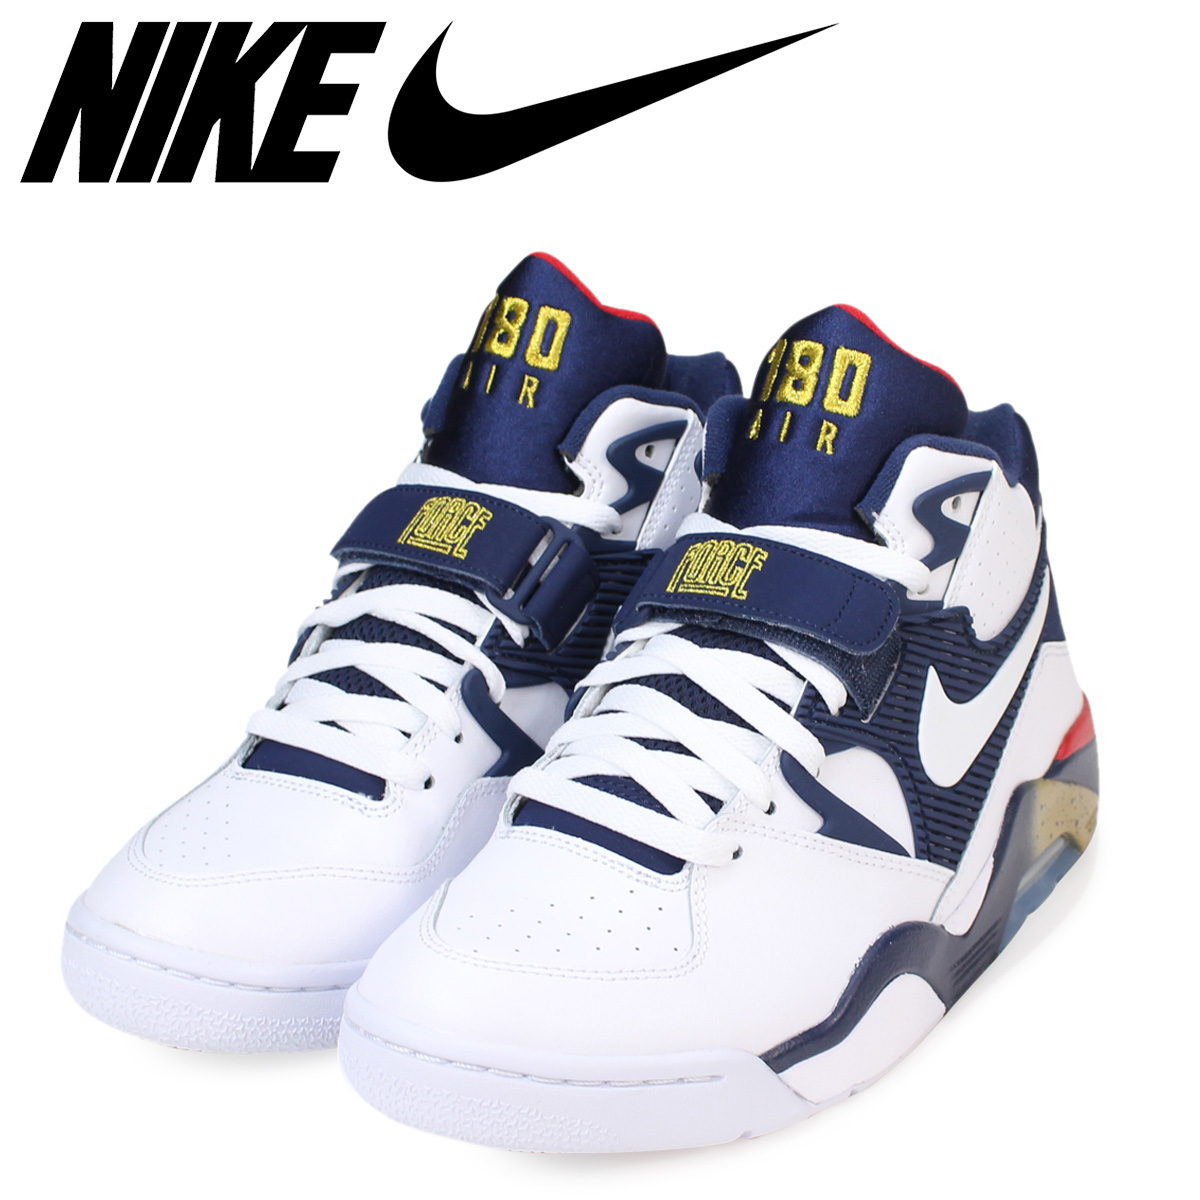 ALLSPORTS  NIKE Nike air force sneakers AIR FORCE 180 OLYMPIC ... f52f79279d